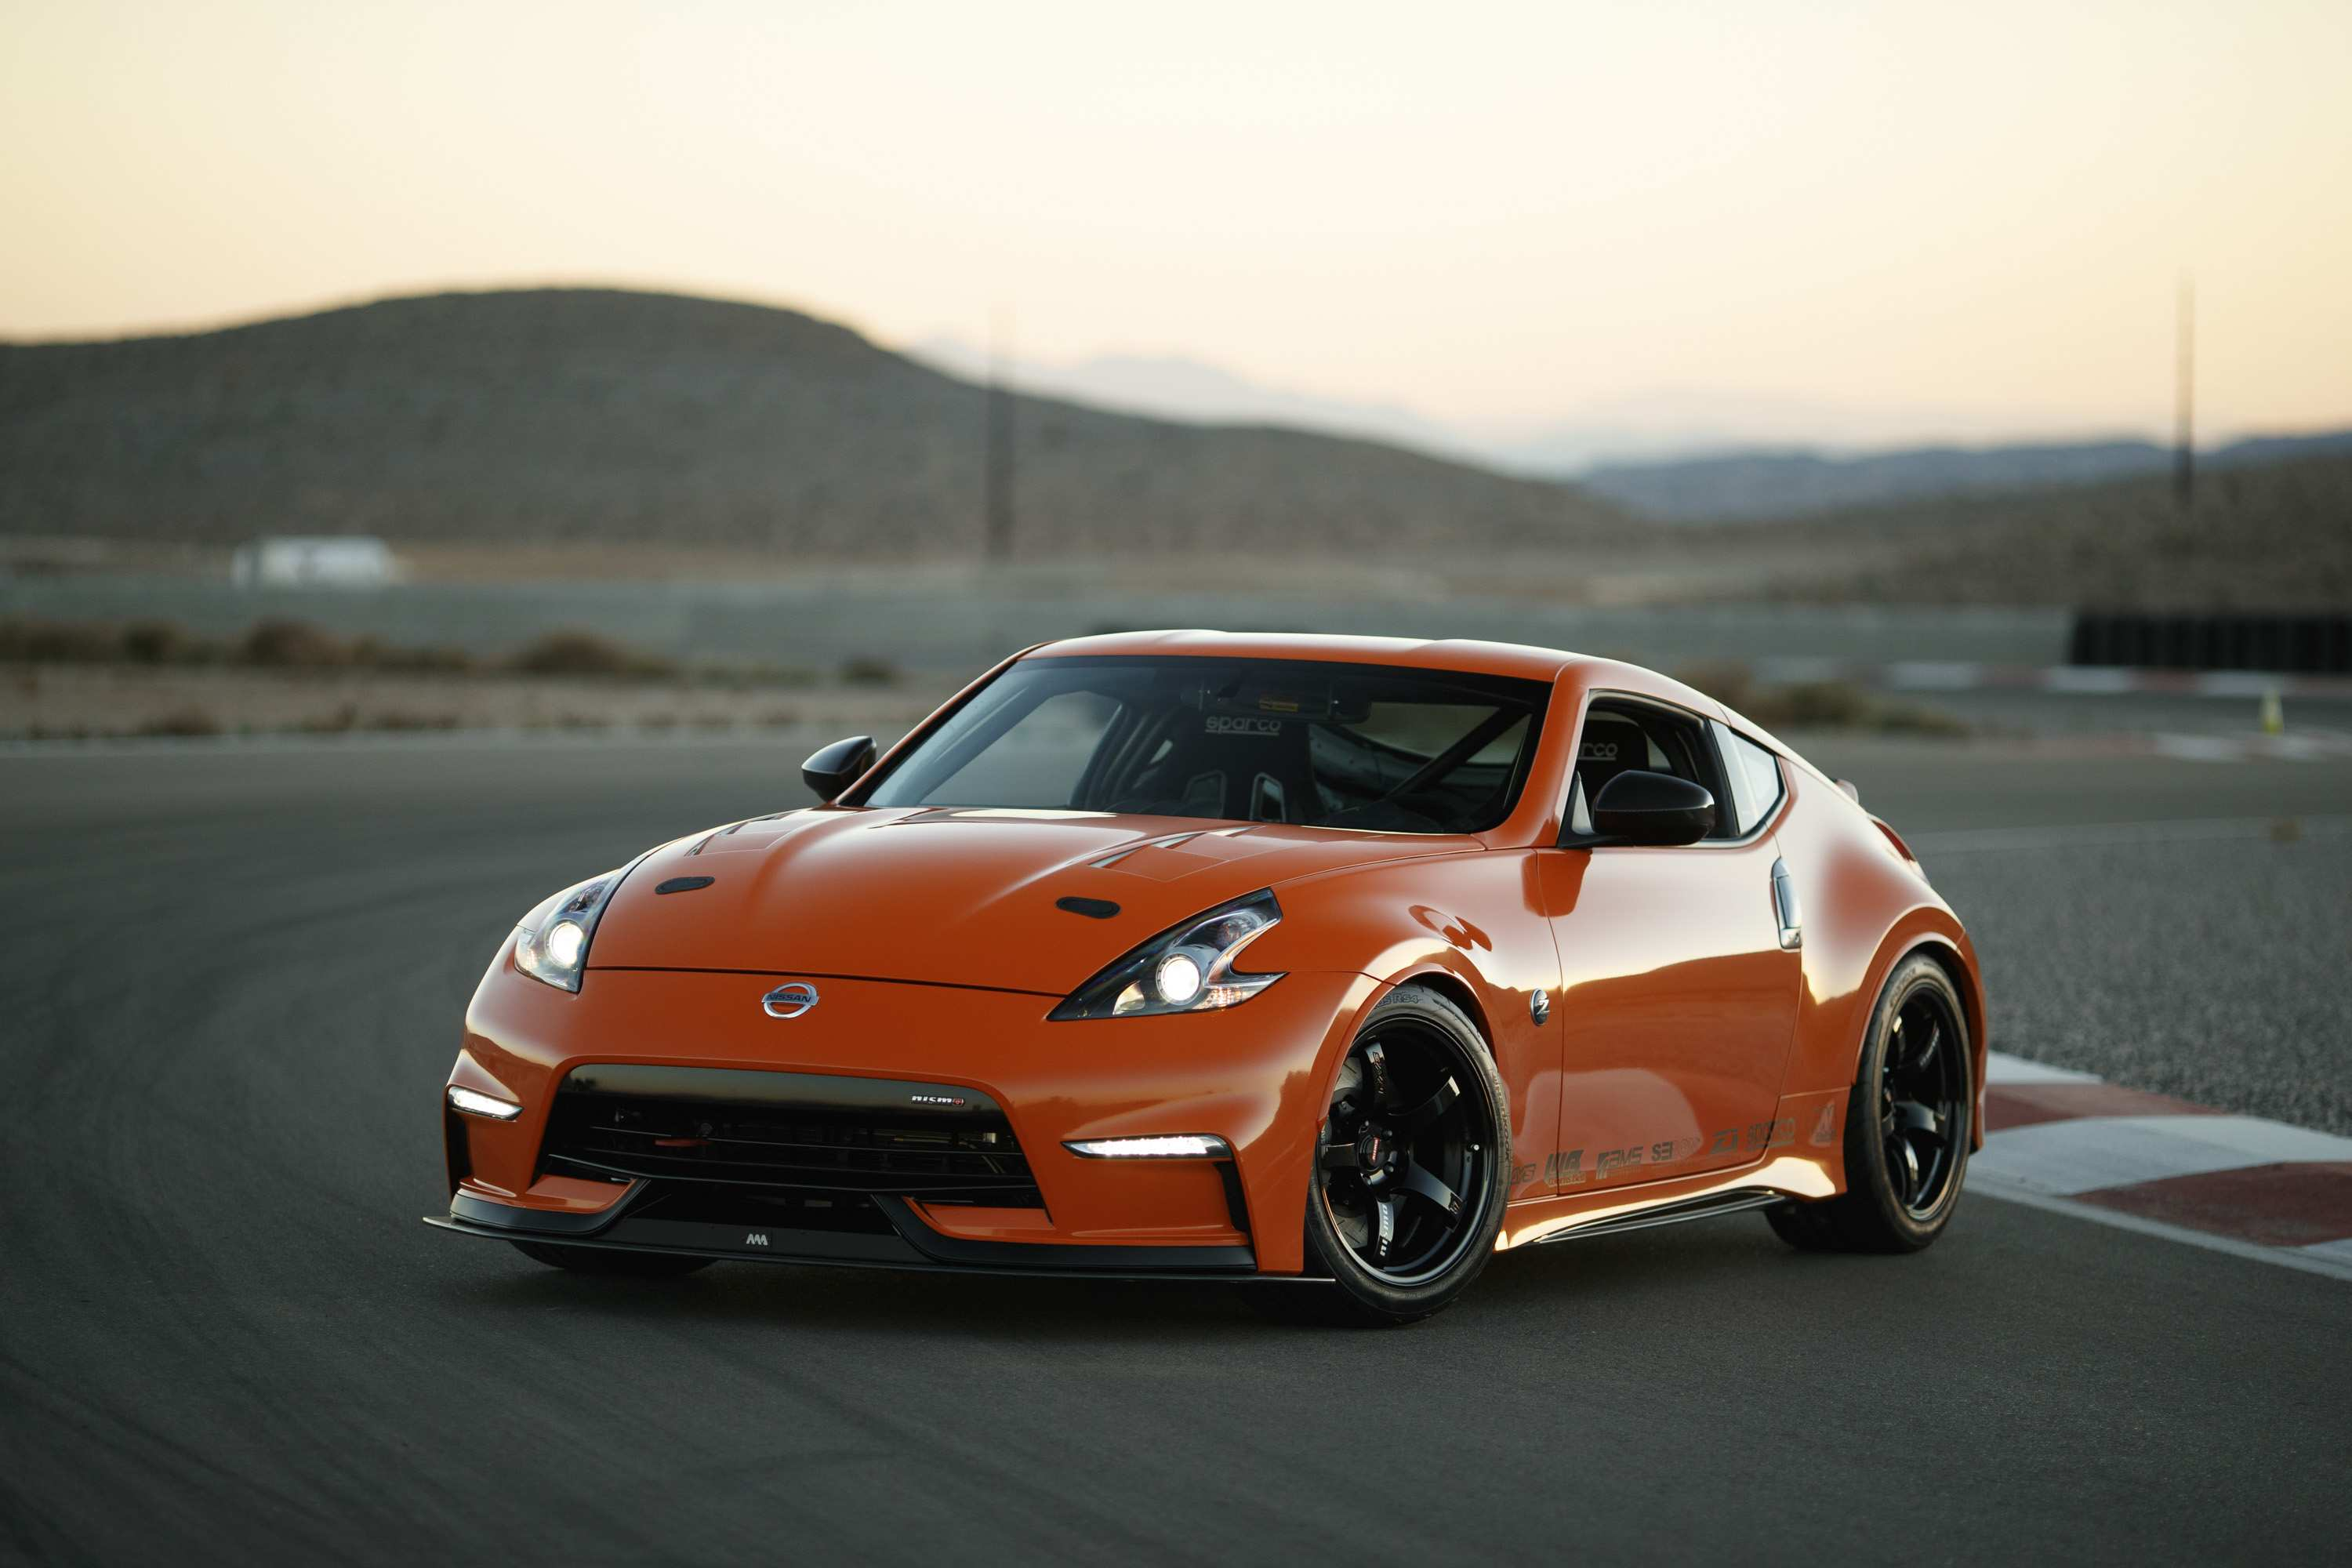 35 Great Nissan Z Exterior 2020 New Review by Nissan Z Exterior 2020